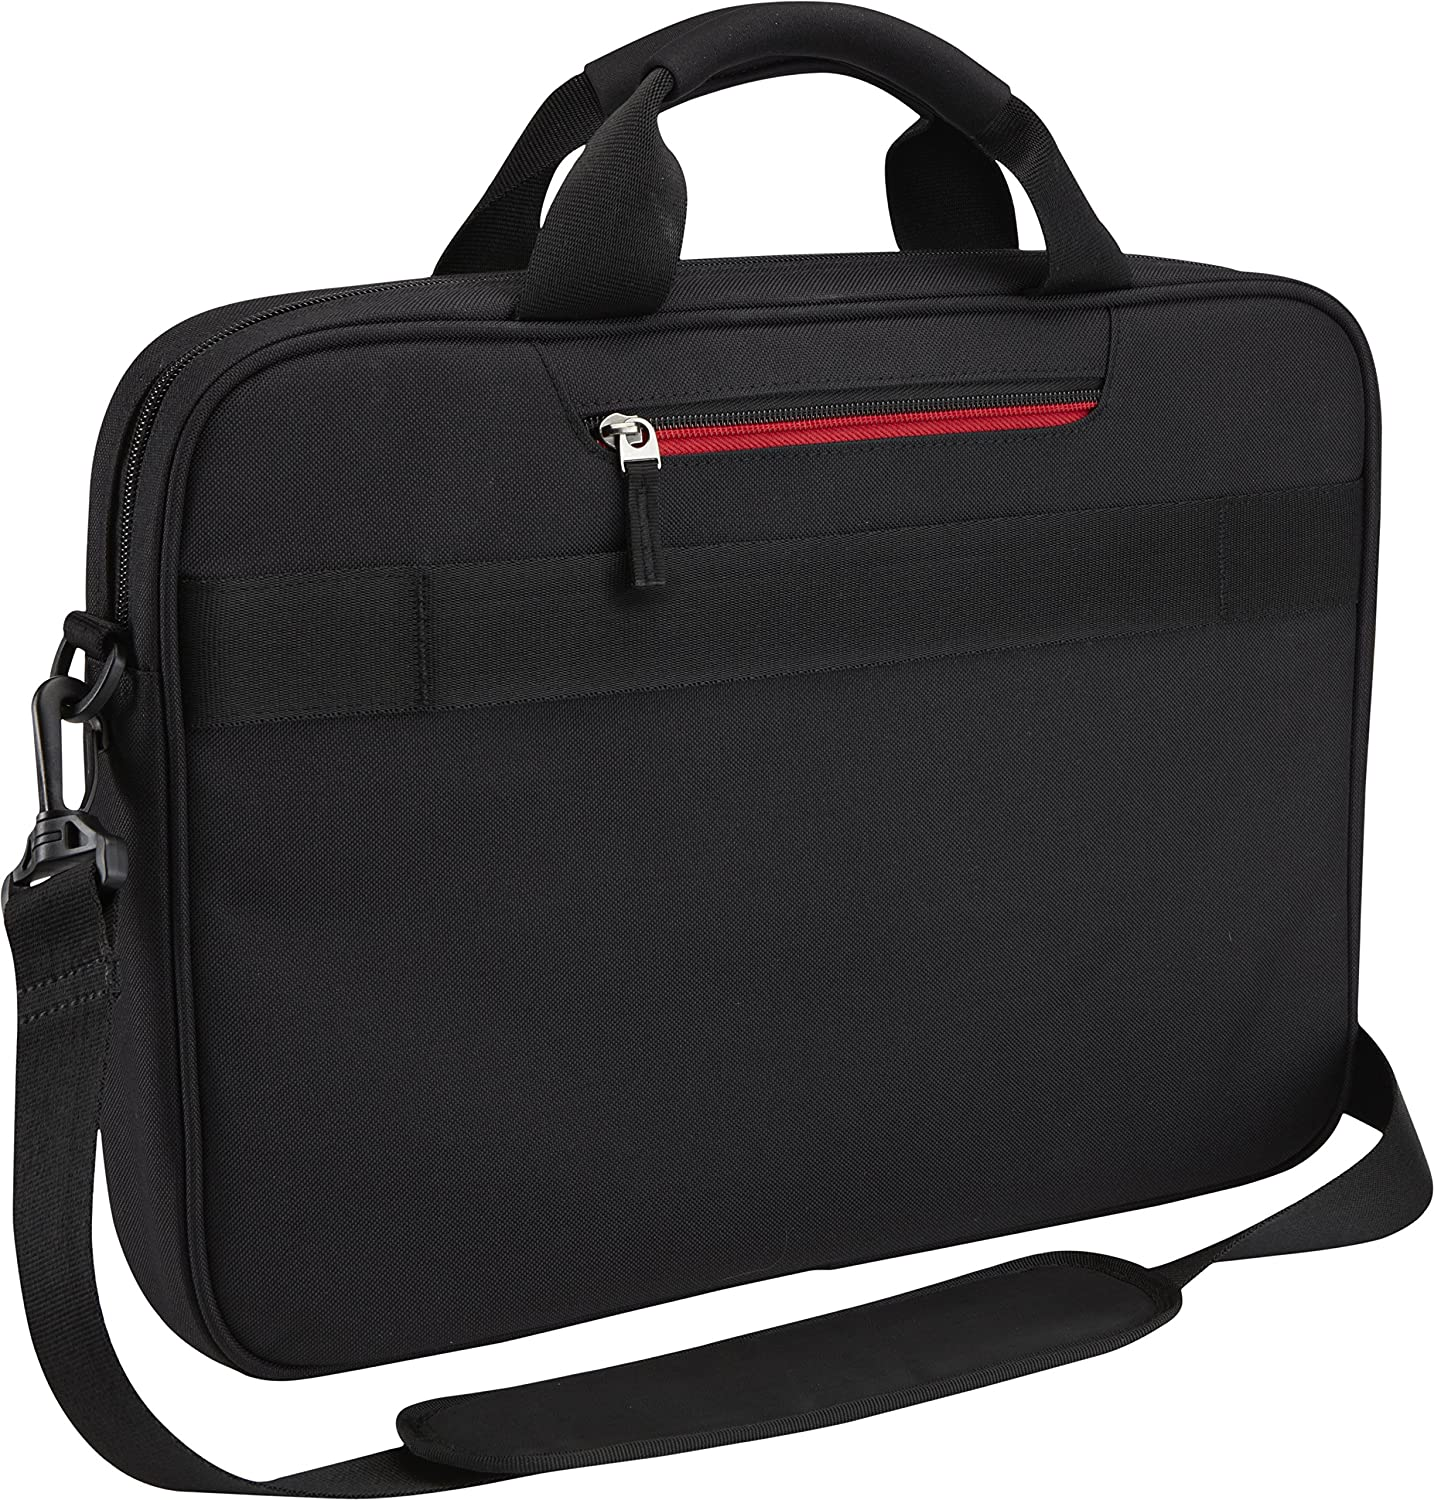 47426bb8458be Amazon.com  Case Logic 15-Inch Laptop and Tablet Briefcase